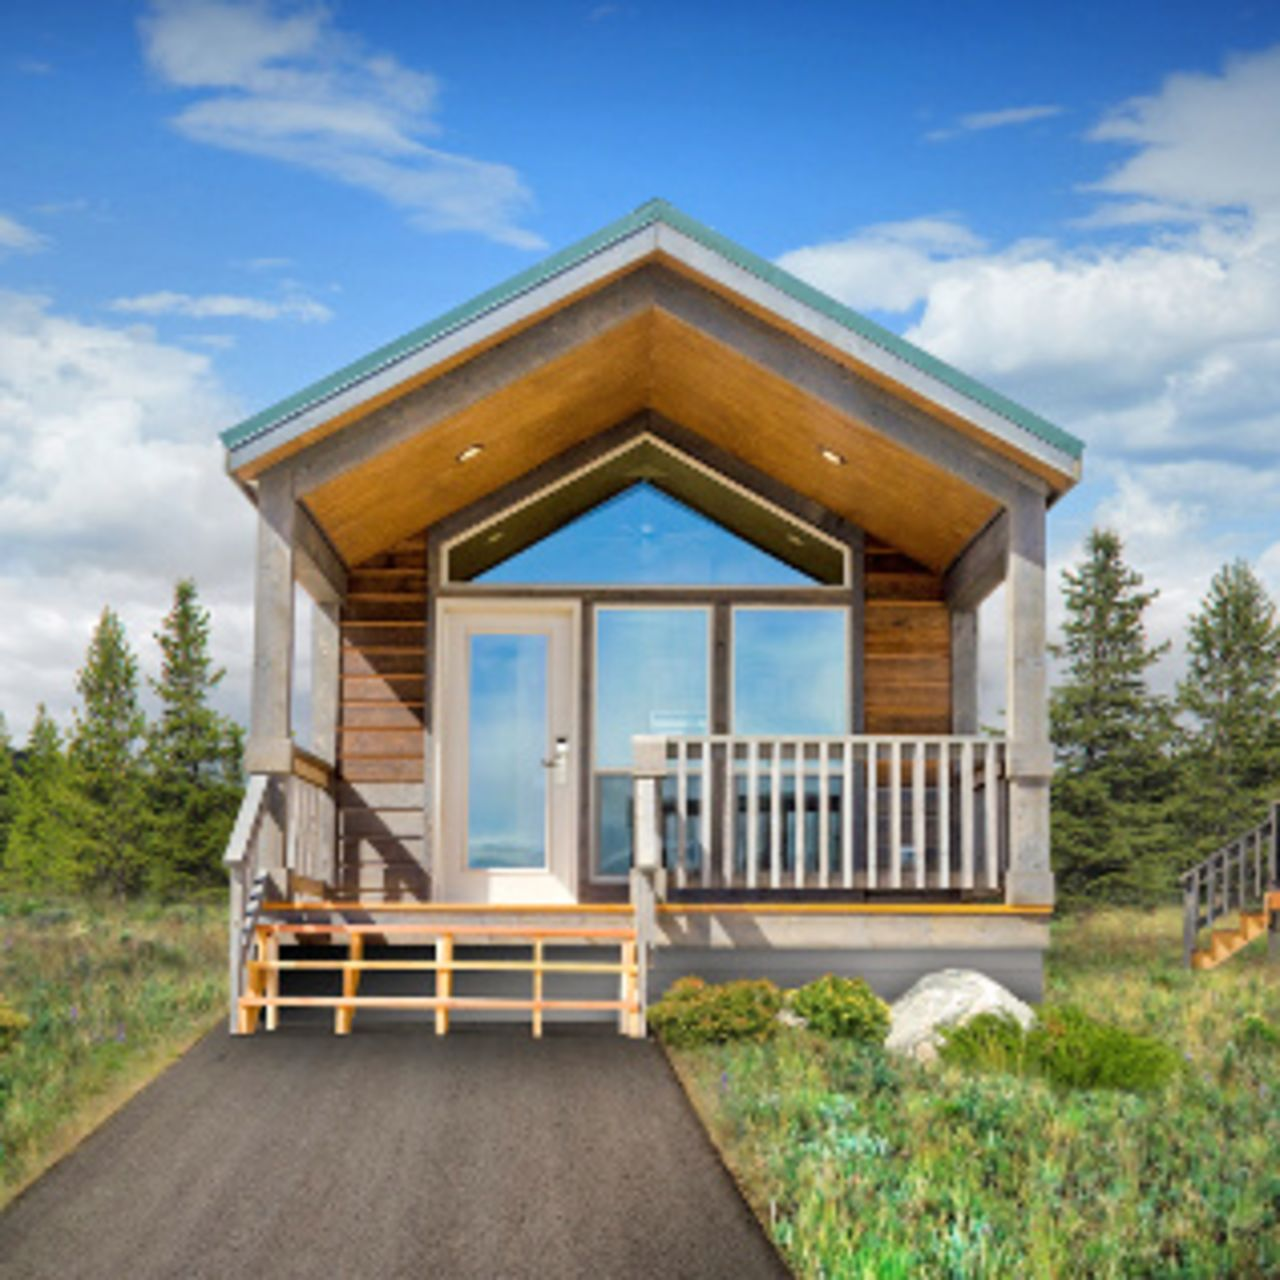 Hotel wyoming explorer cabins at yellowstone canusa for Cabins west lodging